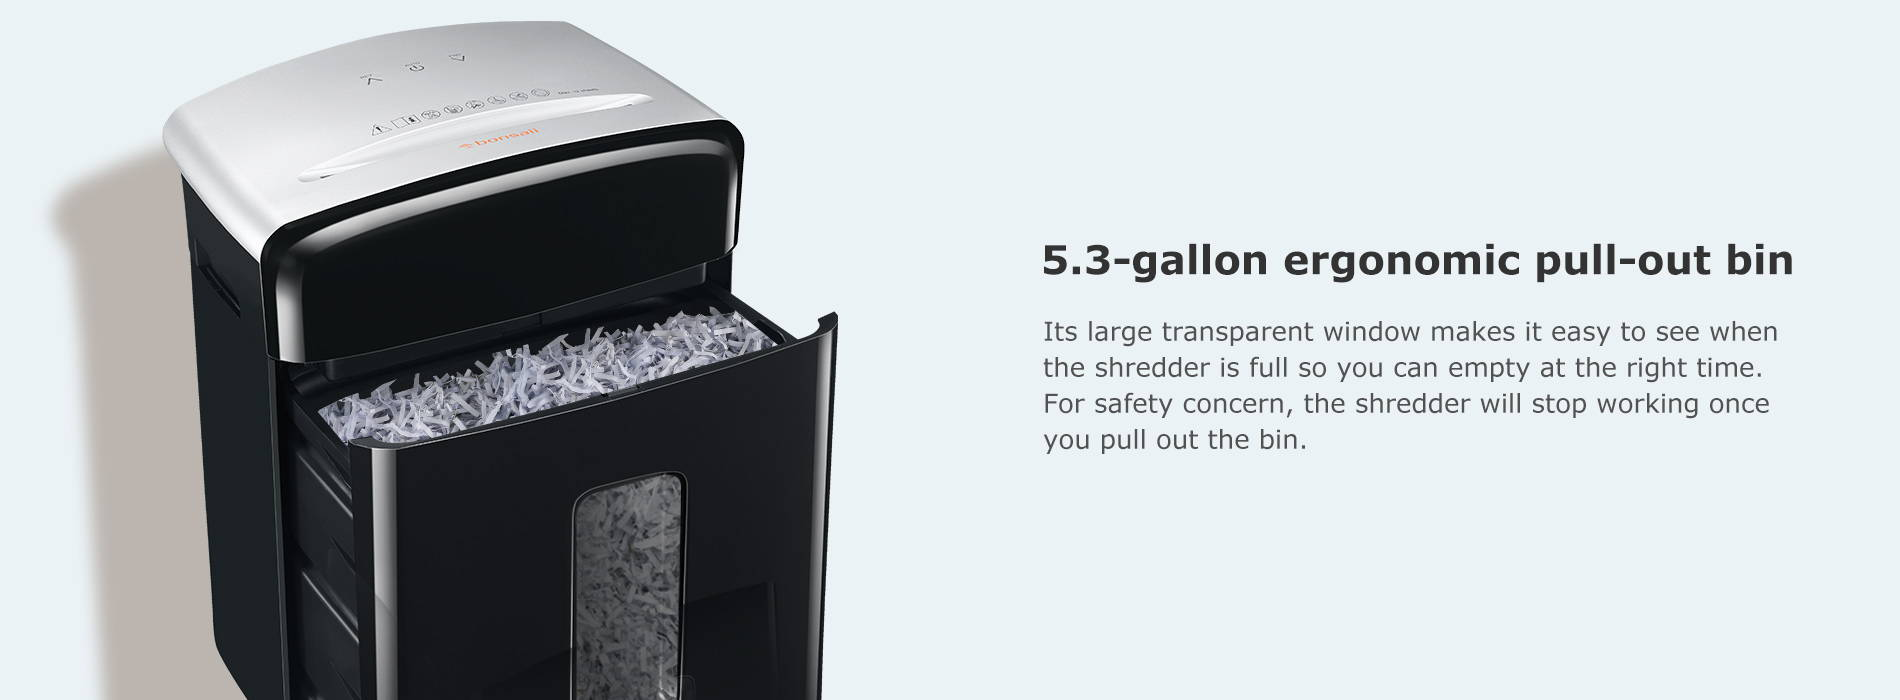 5.3-gallon ergonomic pull-out bin  Its large transparent window makes it easy to see when the shredder is full so you can empty at the right time. For safety concern, the shredder will stop working once you pull out the bin.